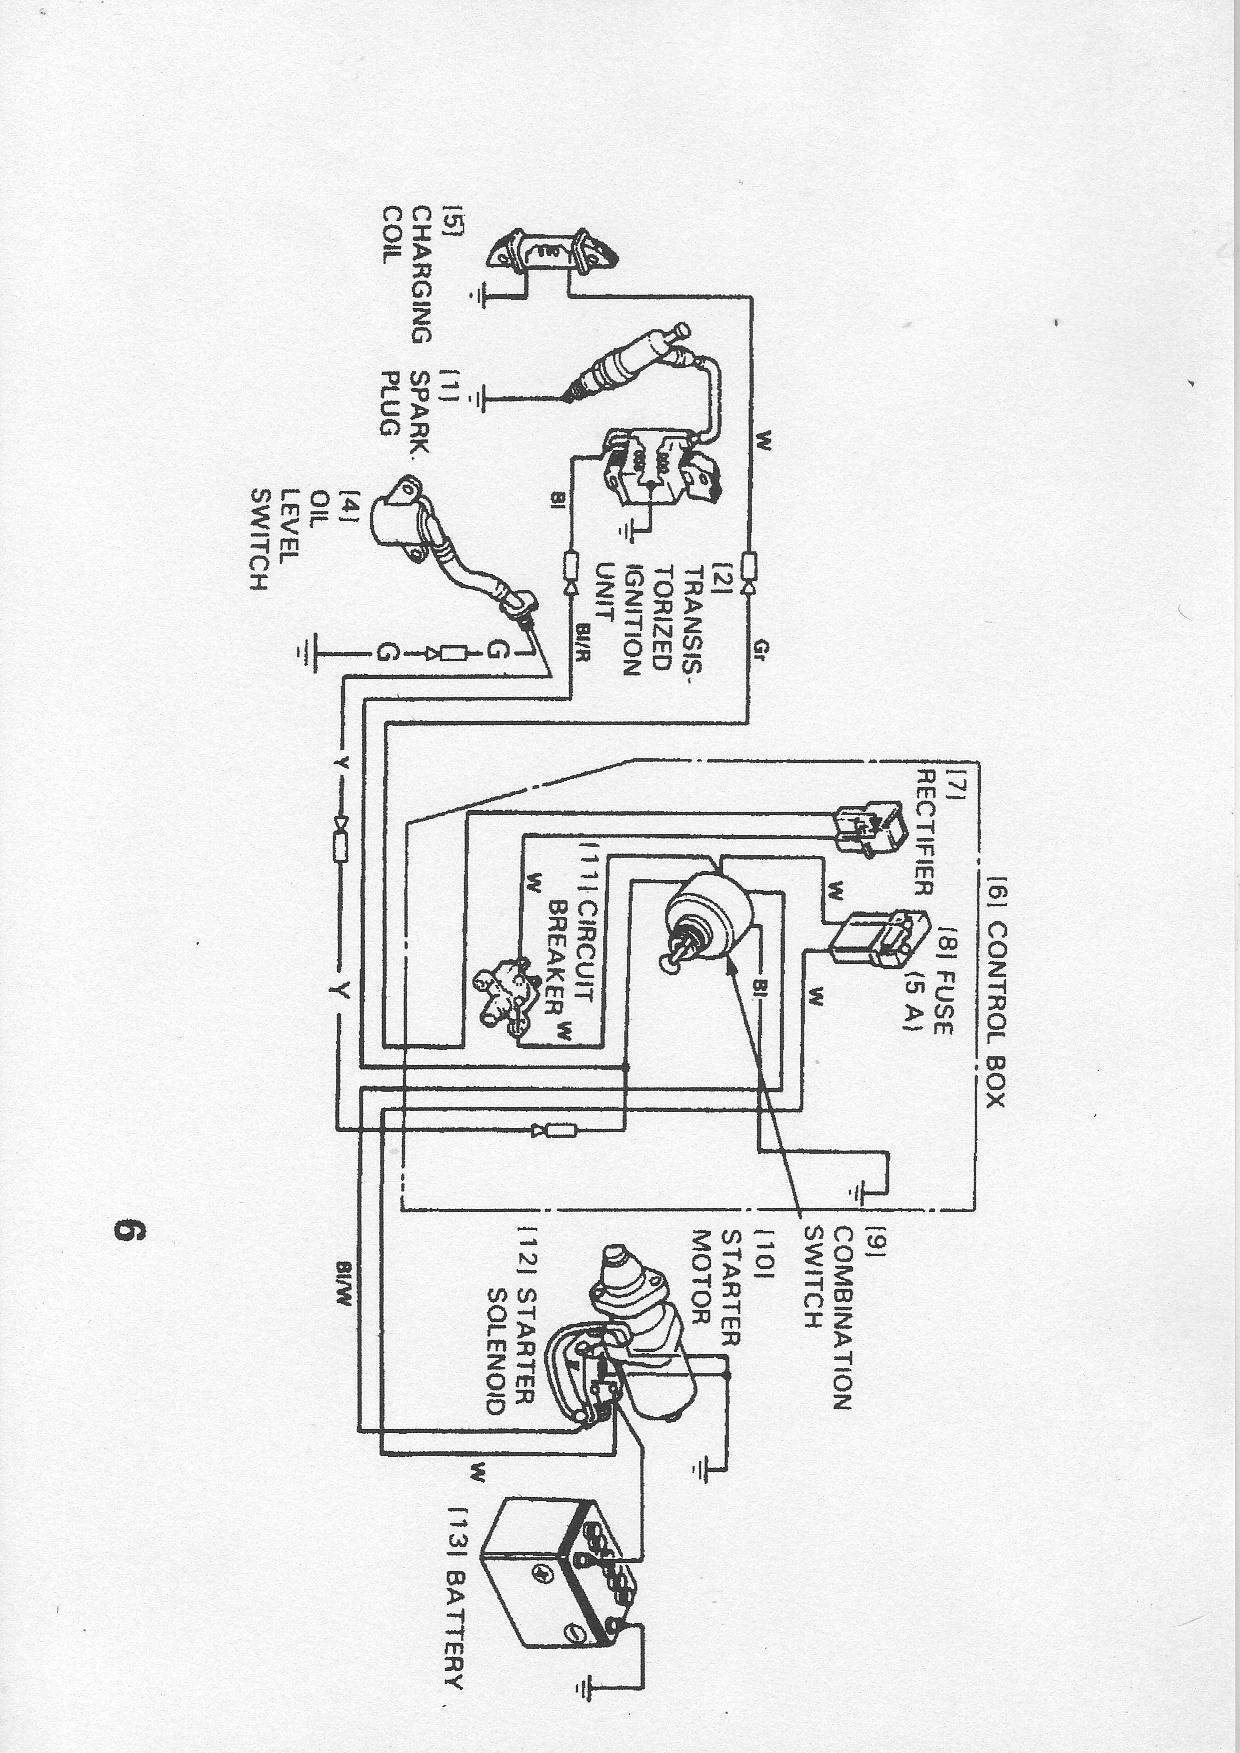 parts diagram of gx630 honda engine  parts  free engine